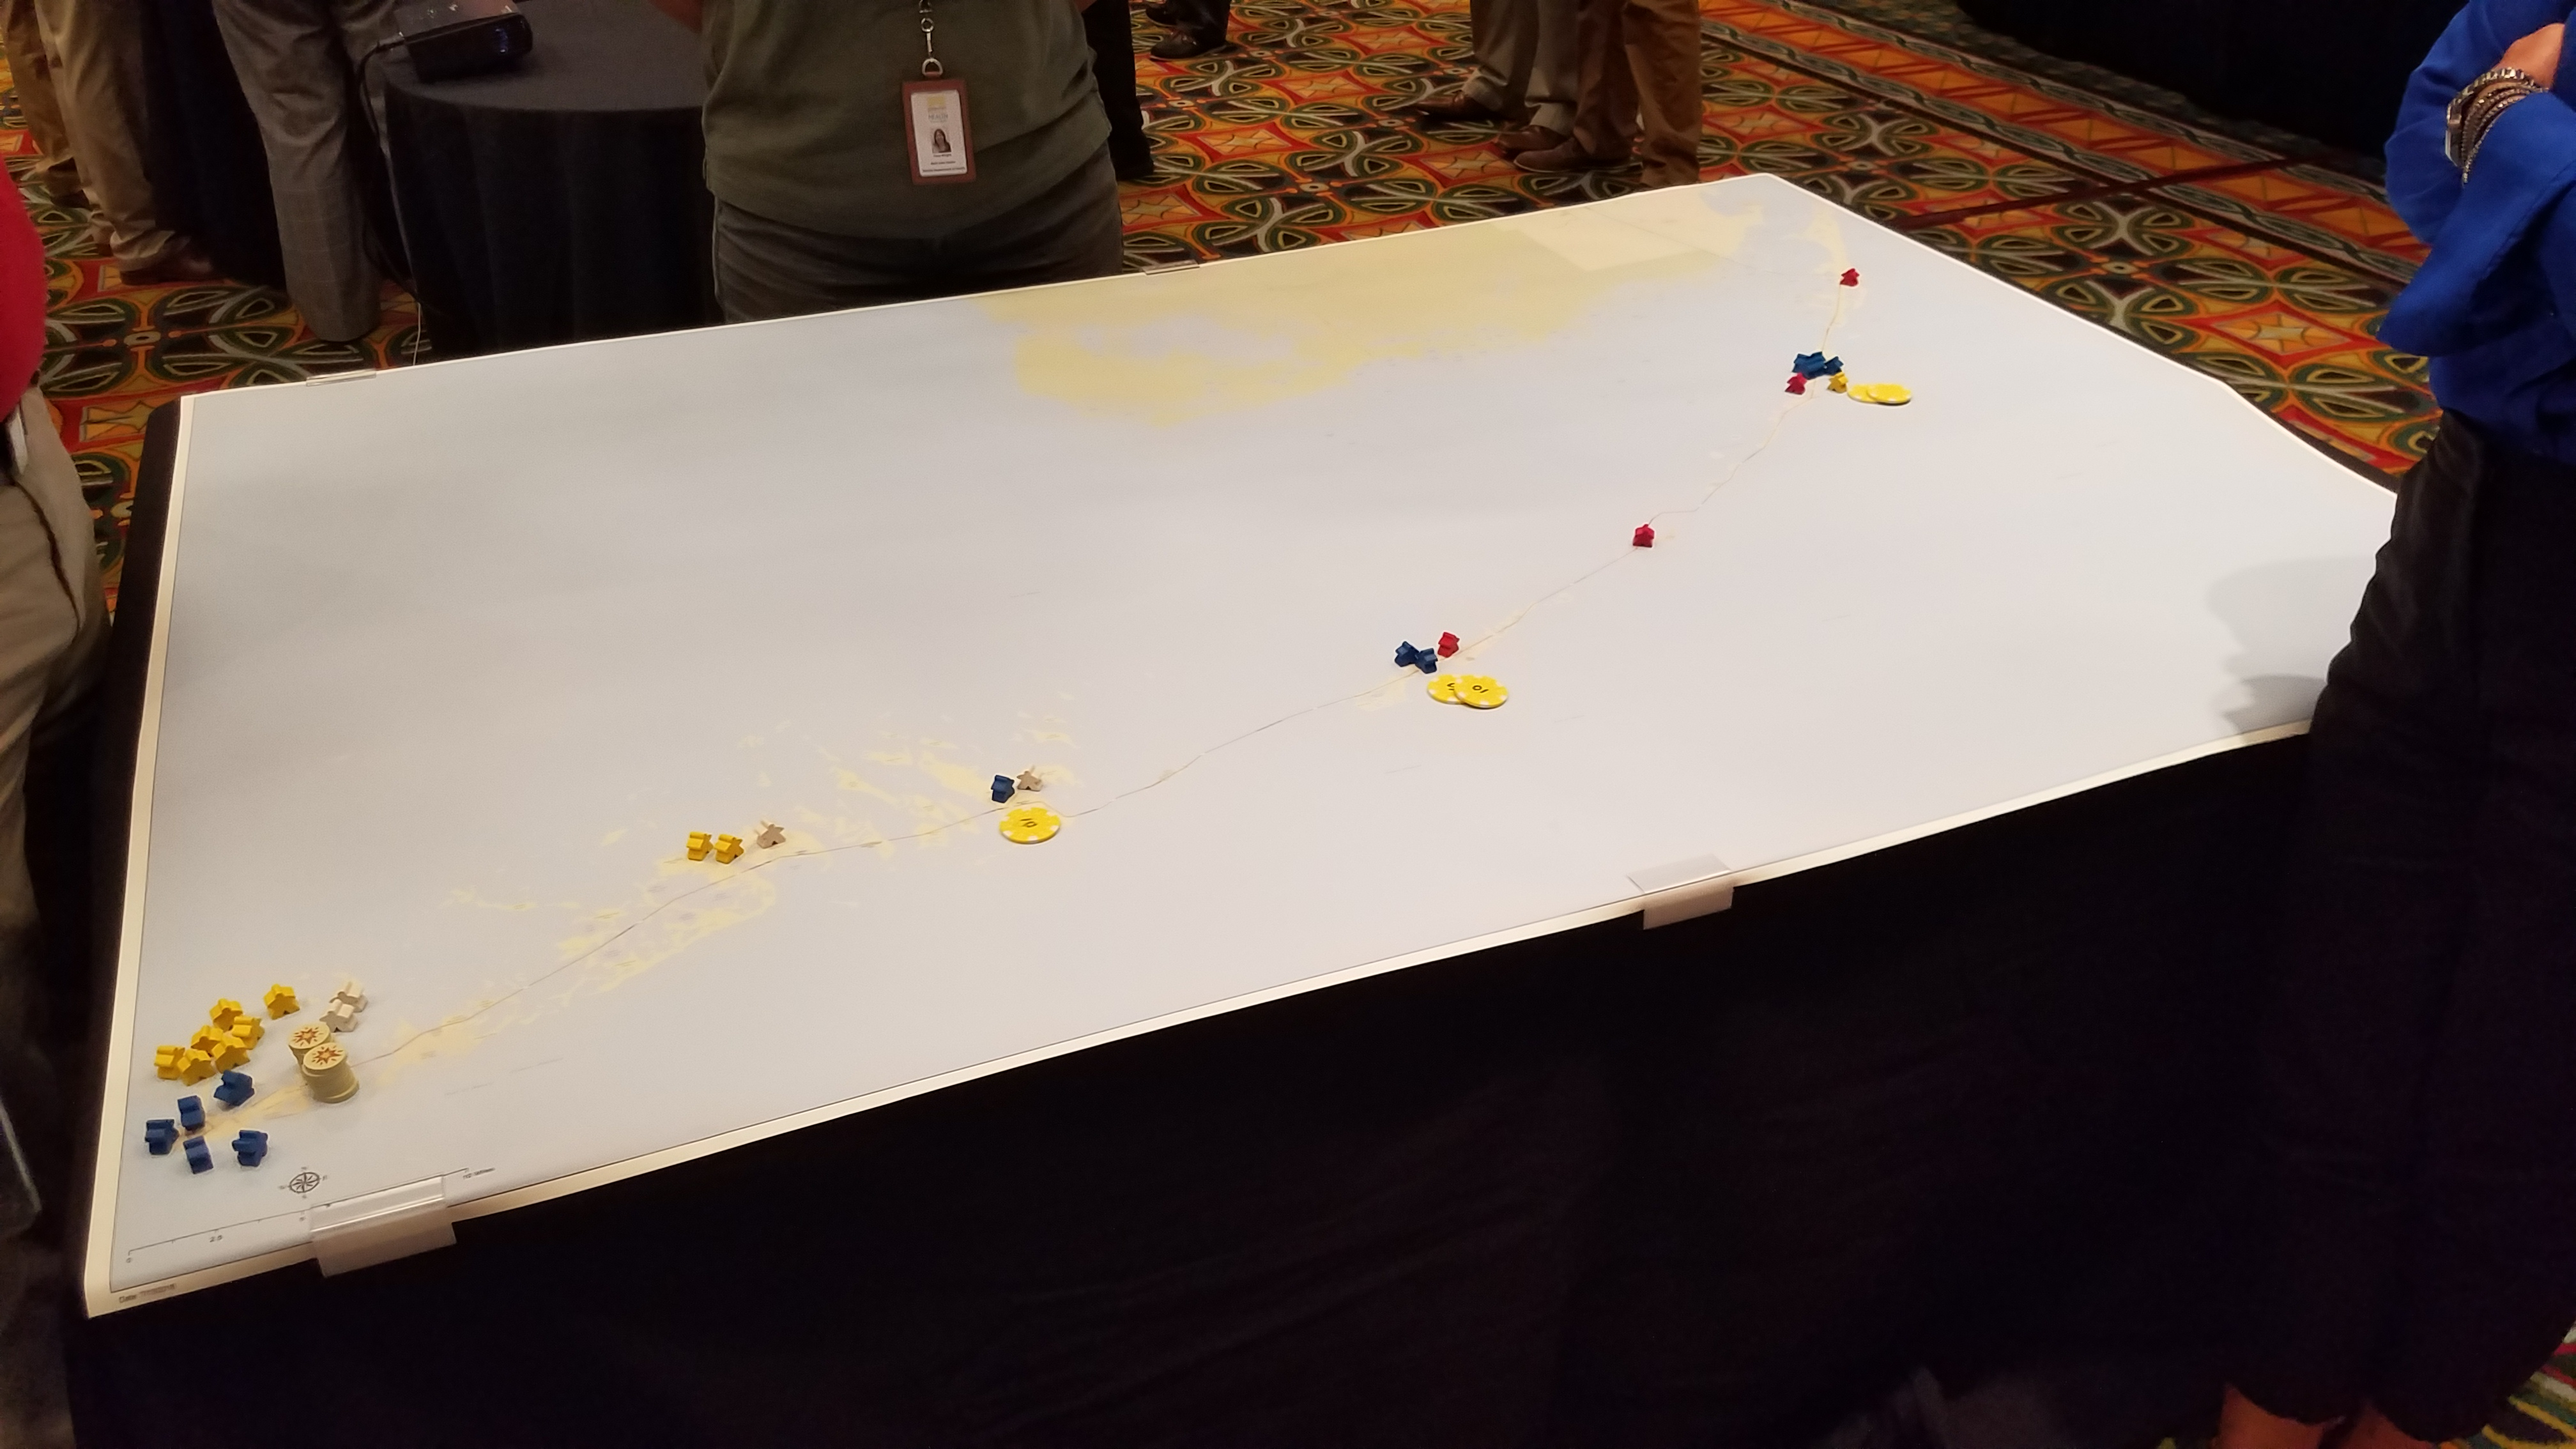 Maps and Meeples (Resources)